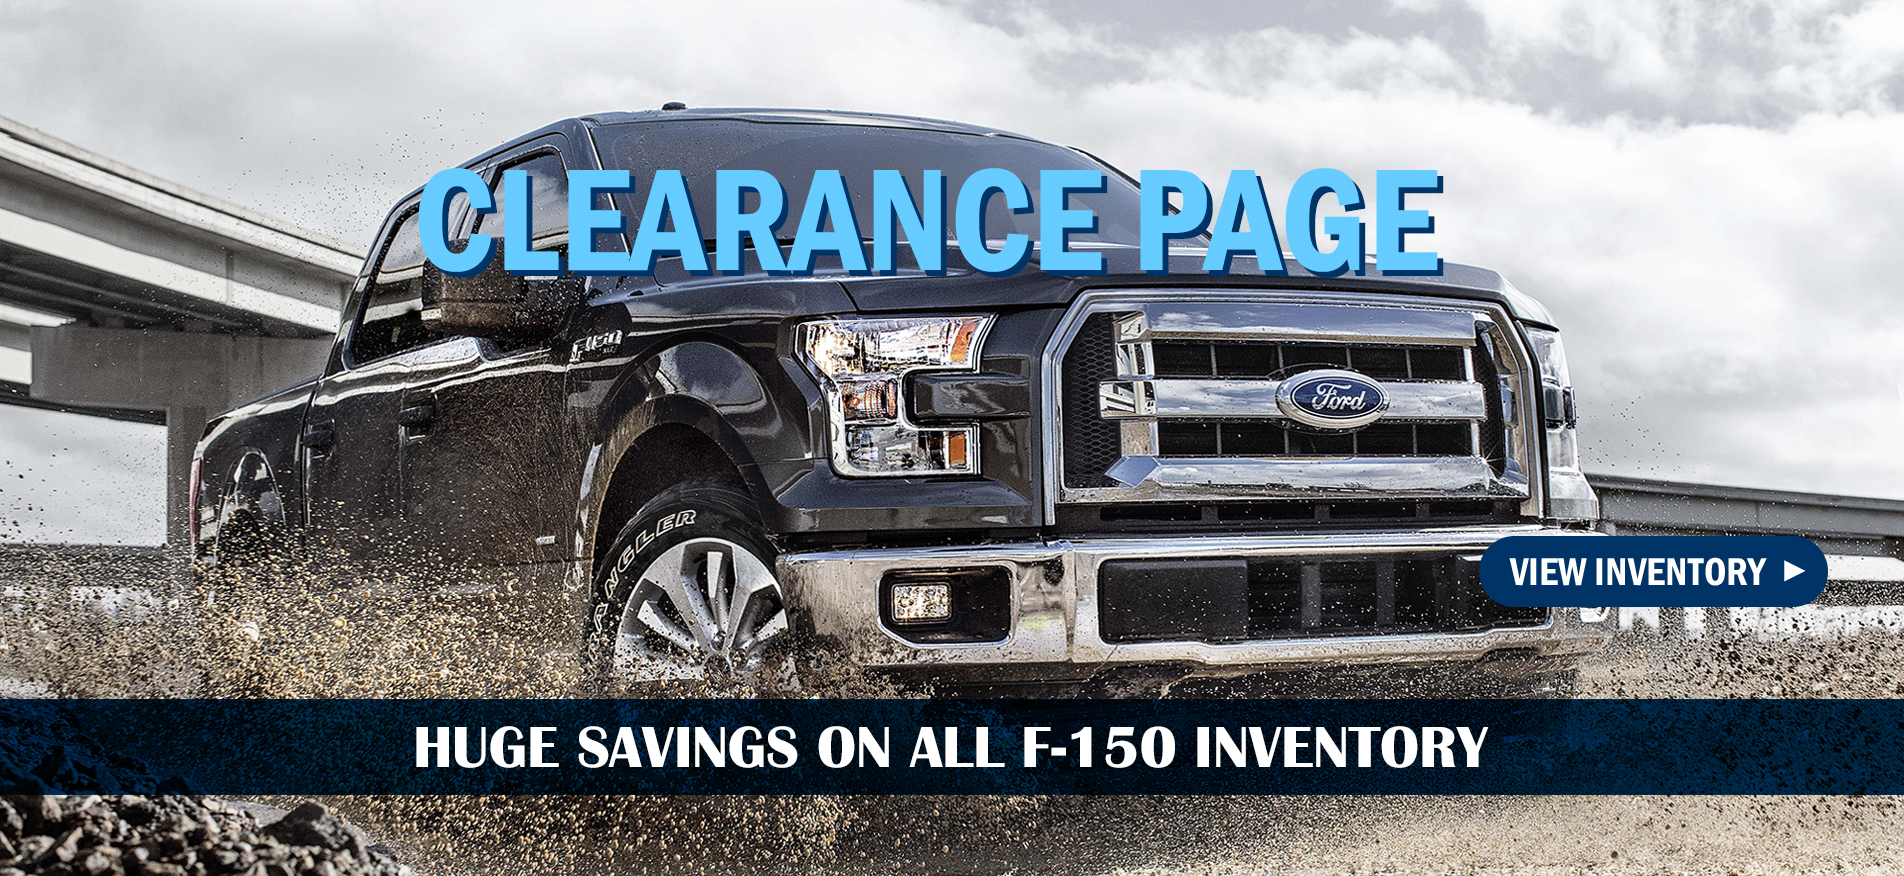 Brant County Ford - Clearance Page